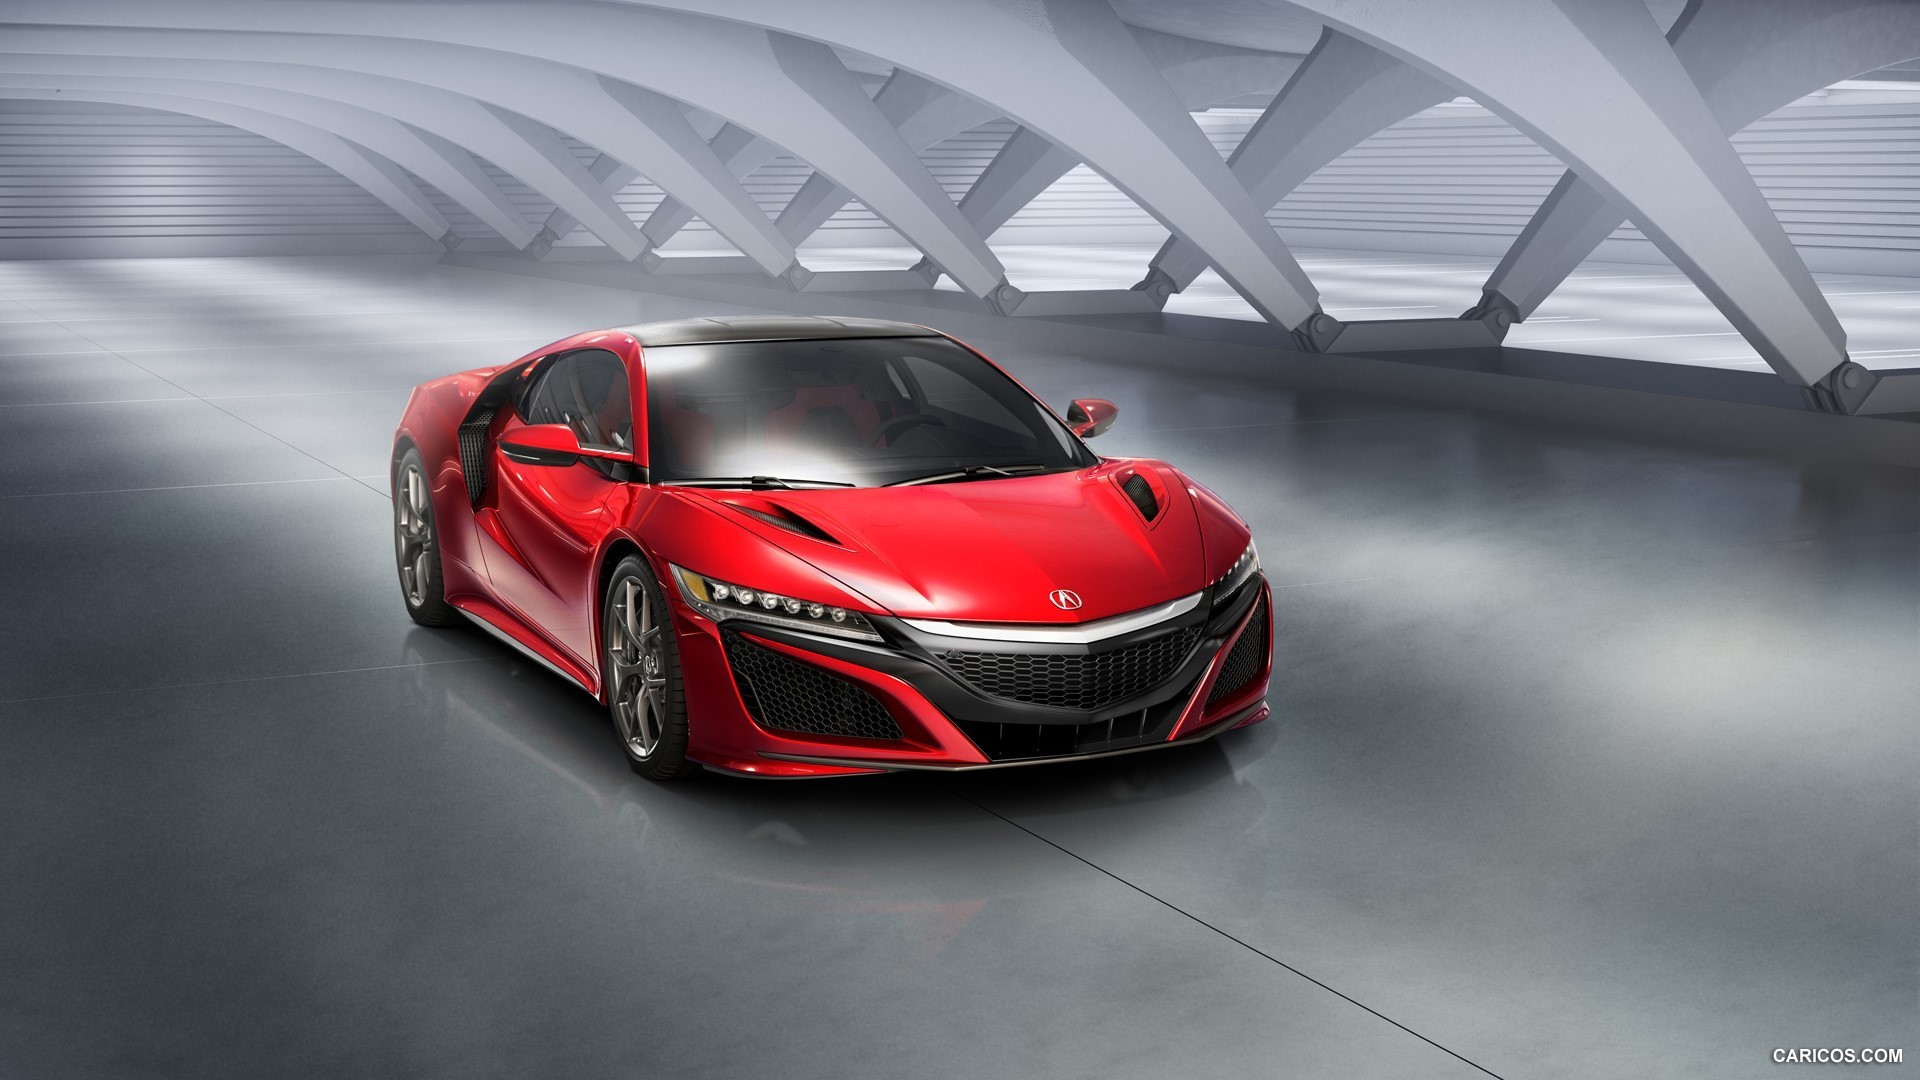 Acura NSX Background